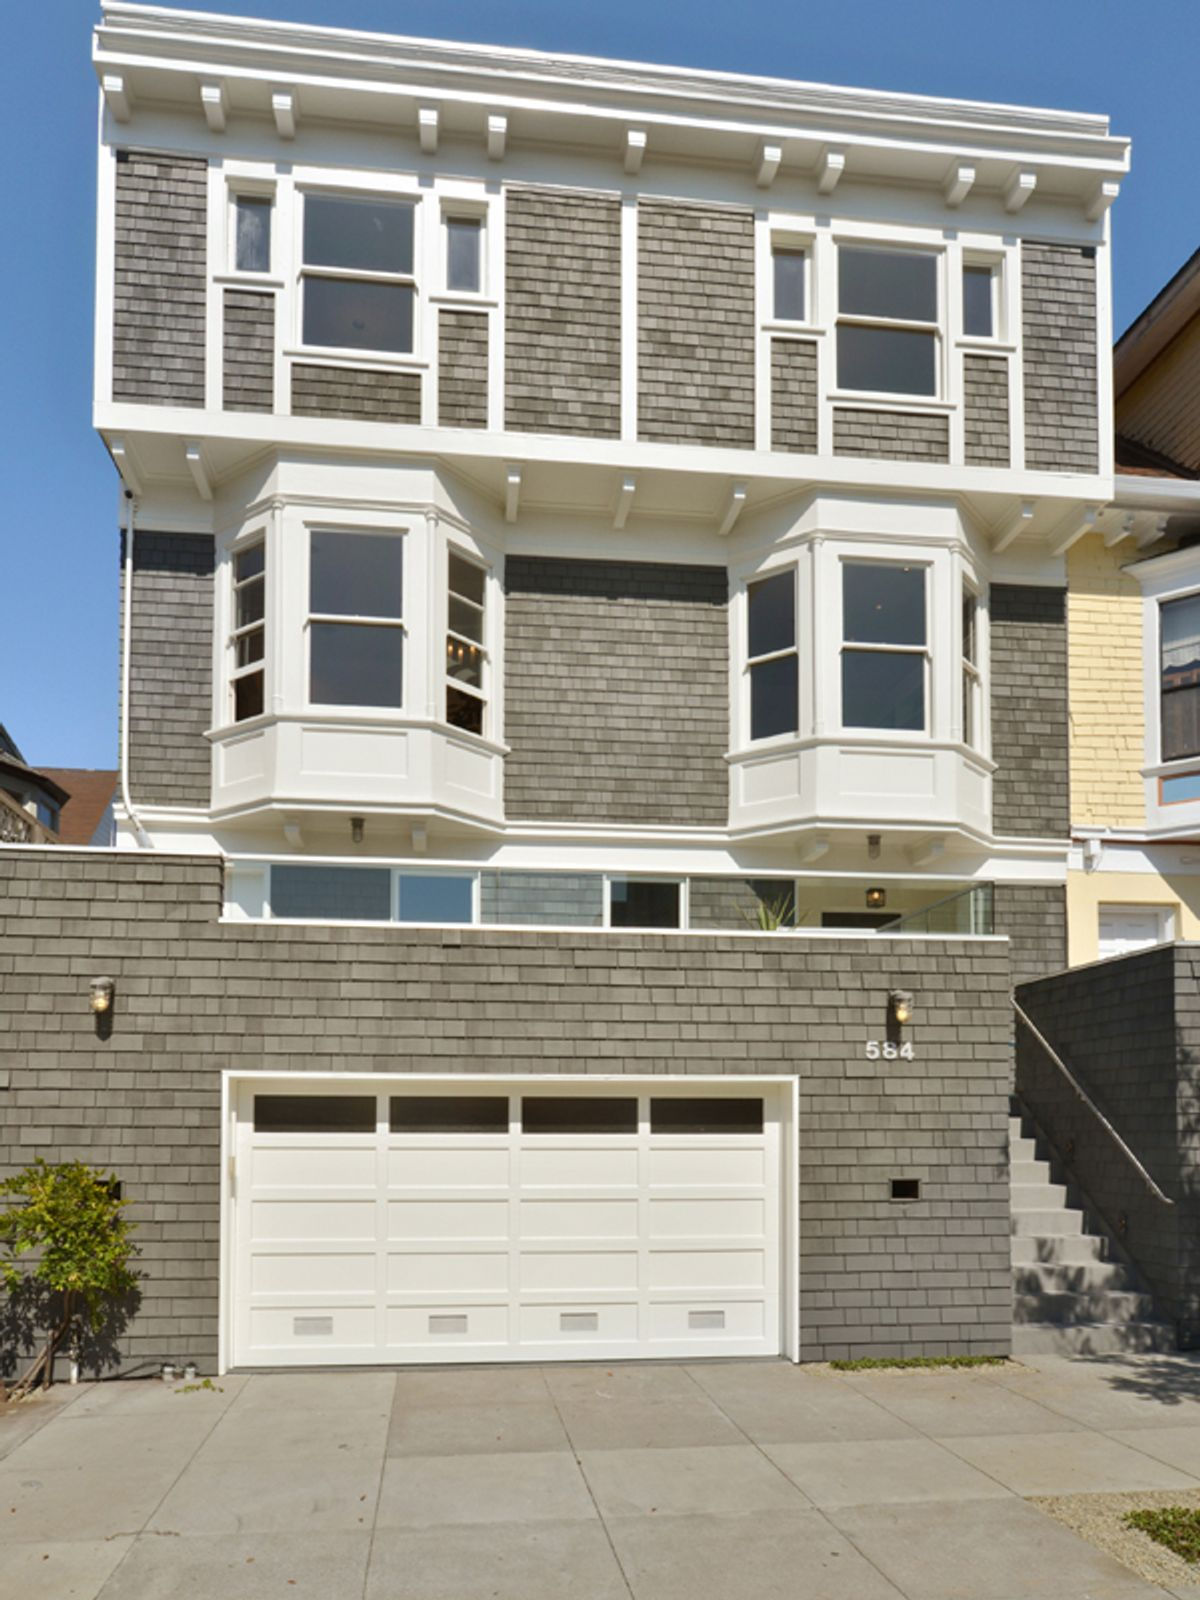 584 Hill Street Grand View Home, San Francisco CA Single Family Home - San Francisco Real Estate